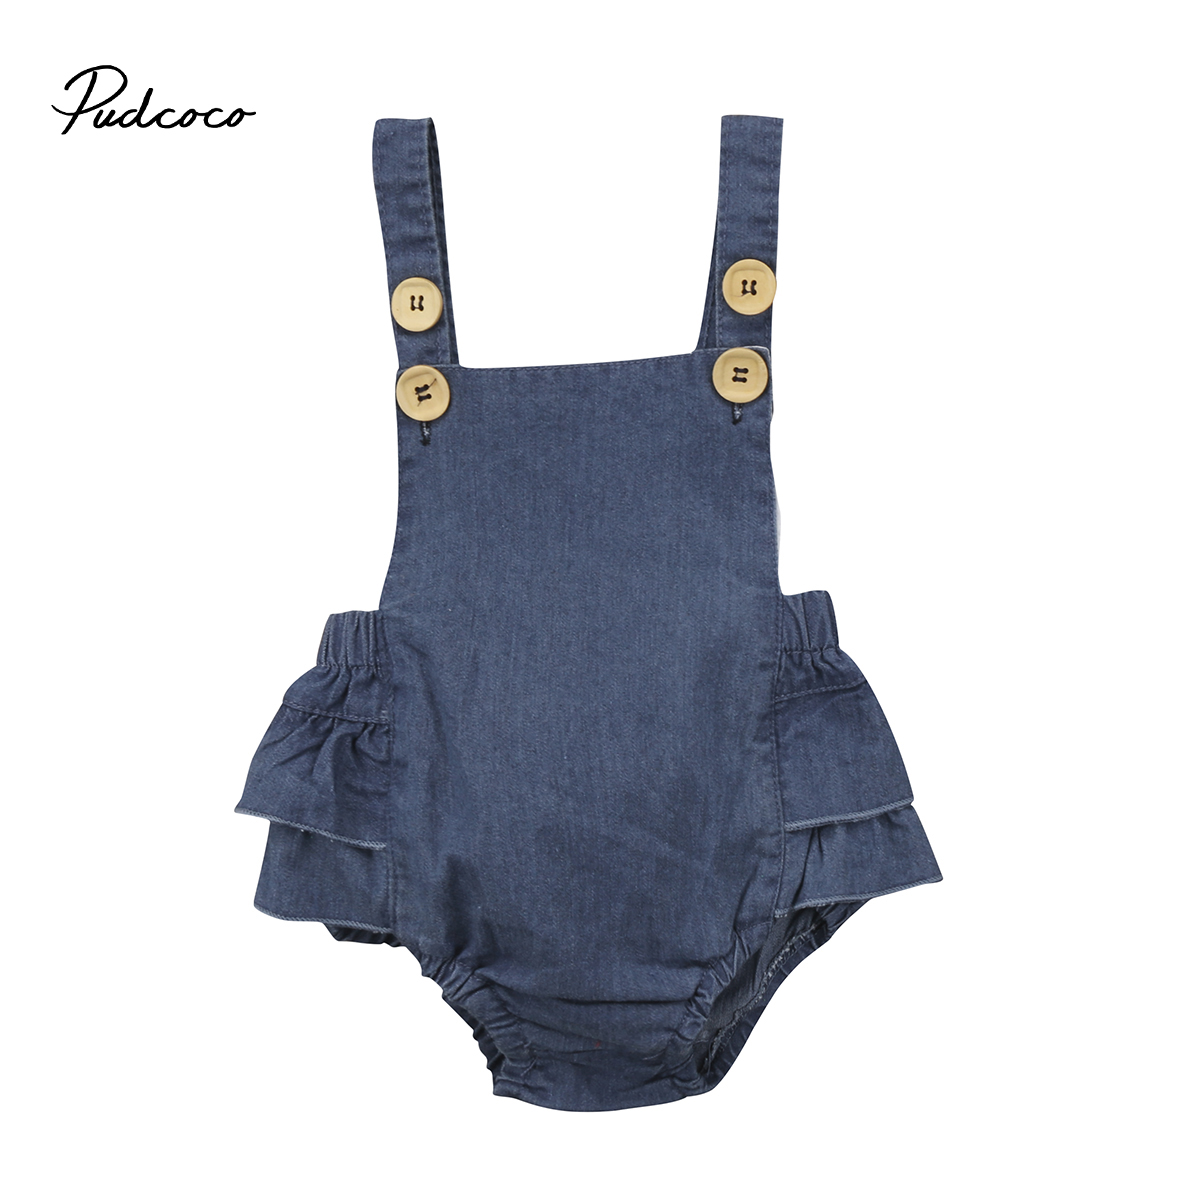 Pudcoco Newborn Infant Baby Girls Denim Romper Jumpsuit Playsuit One-Pieces Summer Clothes Sunsuit Outfits summer newborn infant baby girl romper short sleeve floral romper jumpsuit outfits sunsuit clothes